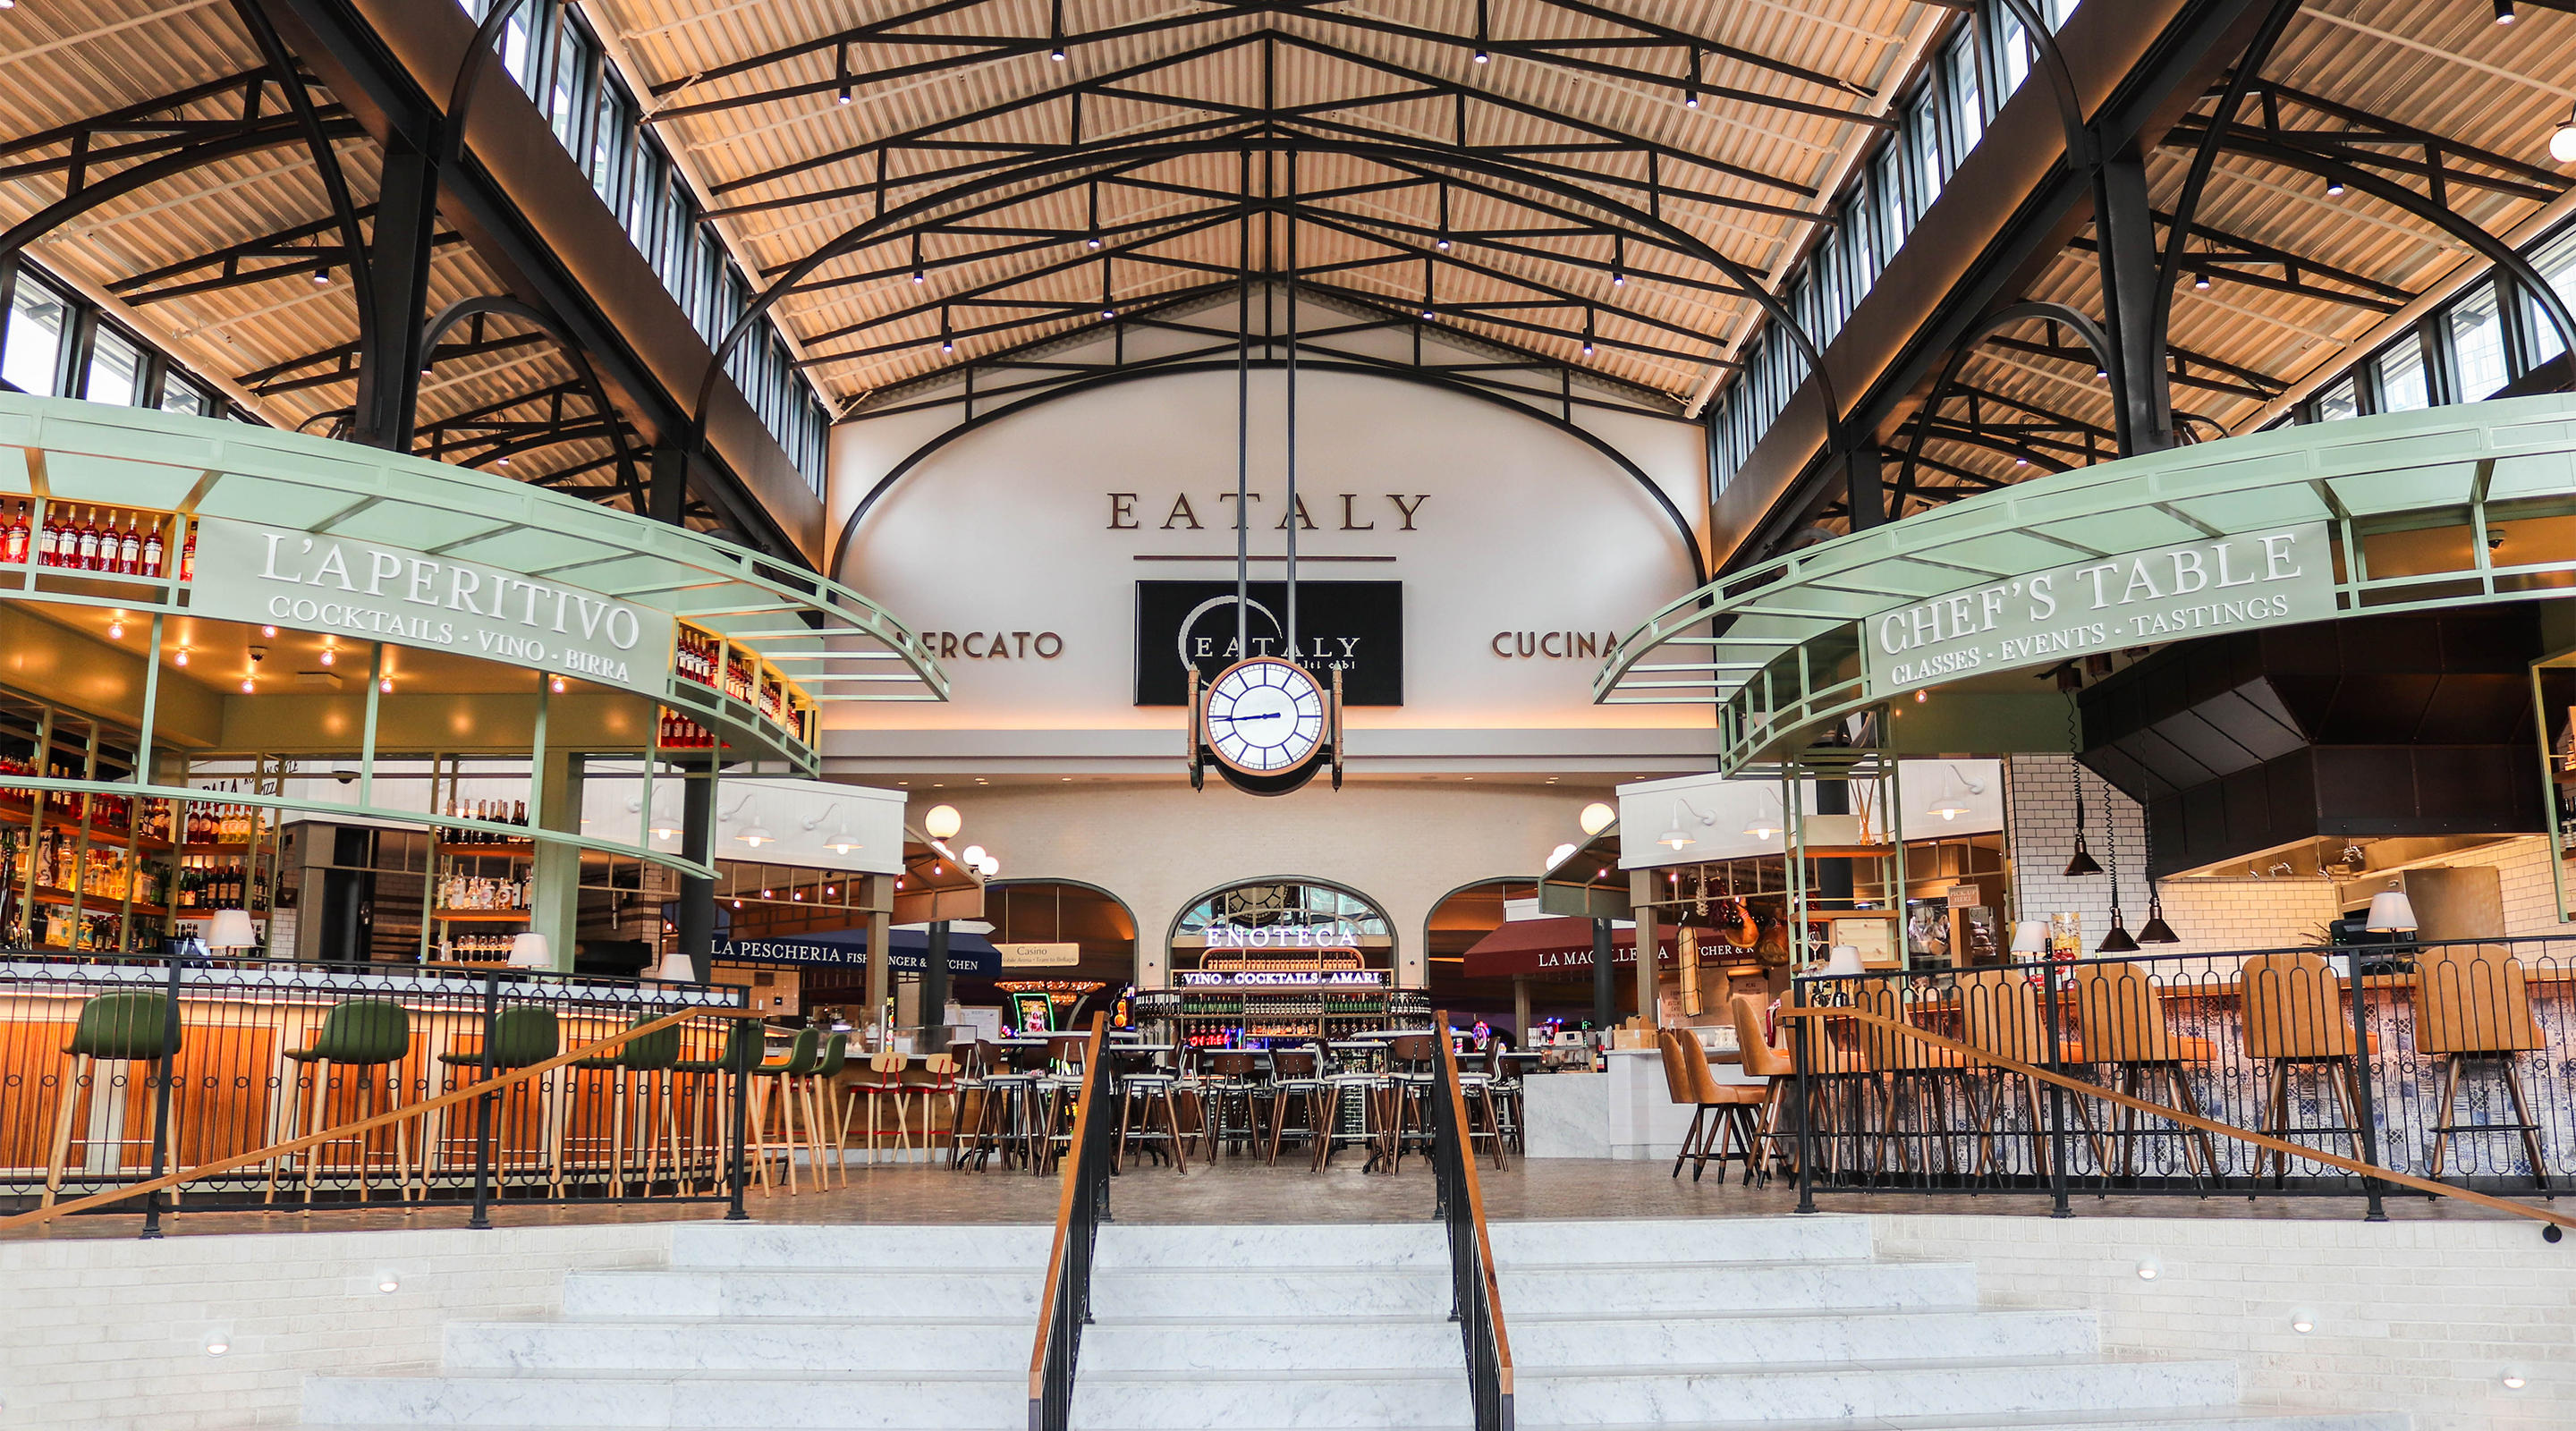 The main entrance of Eataly at Park MGM.